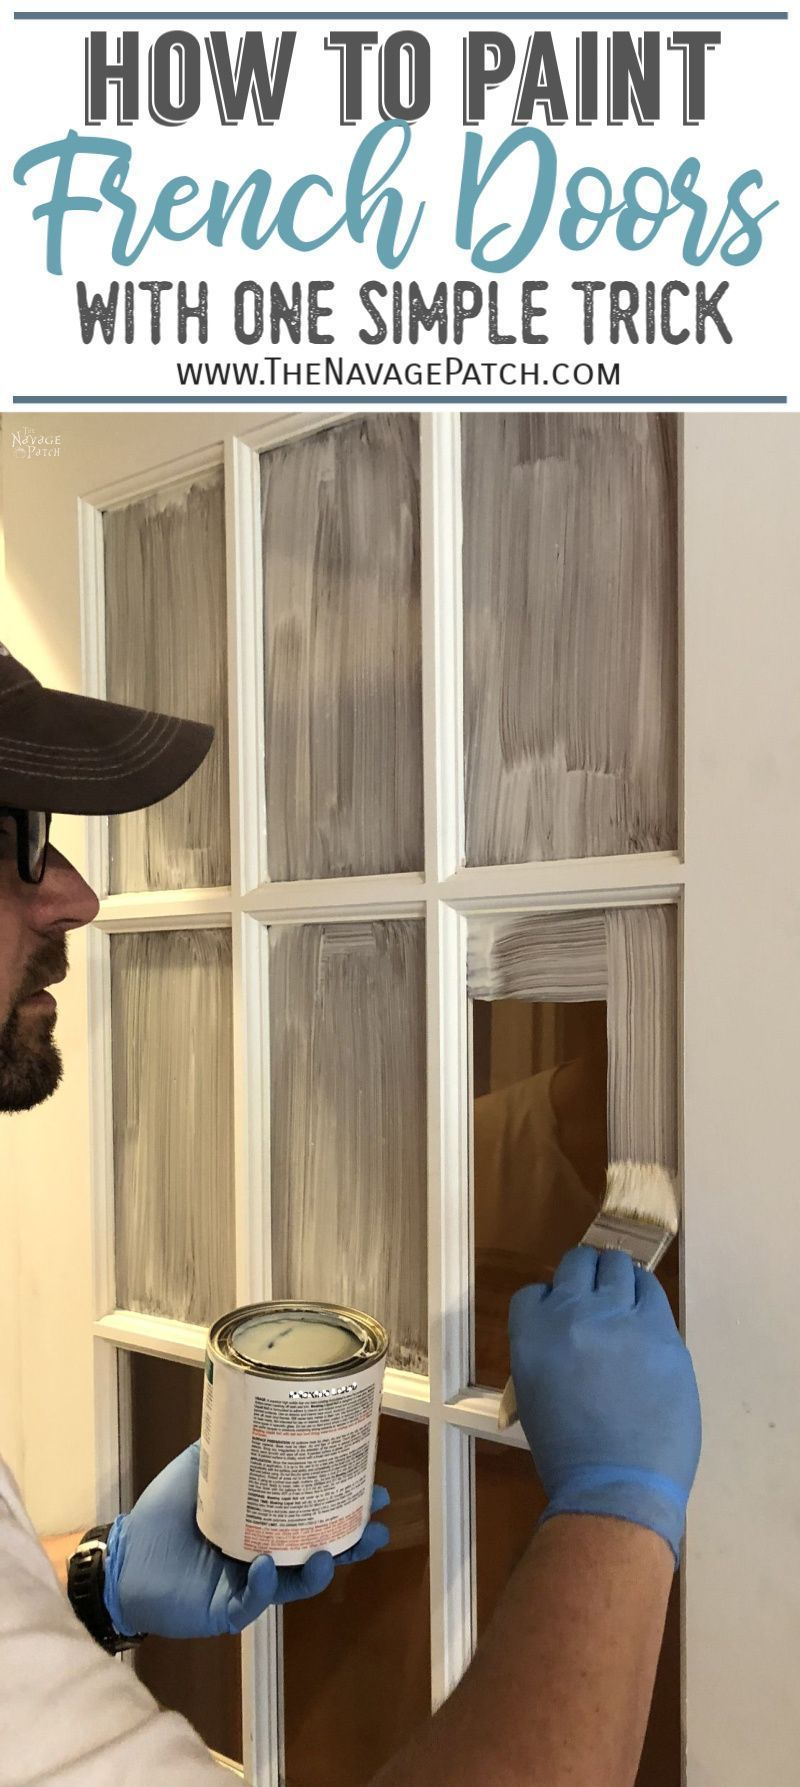 How To Paint French Doors The Easy Way In 2020 Diy Home Repair Improvement